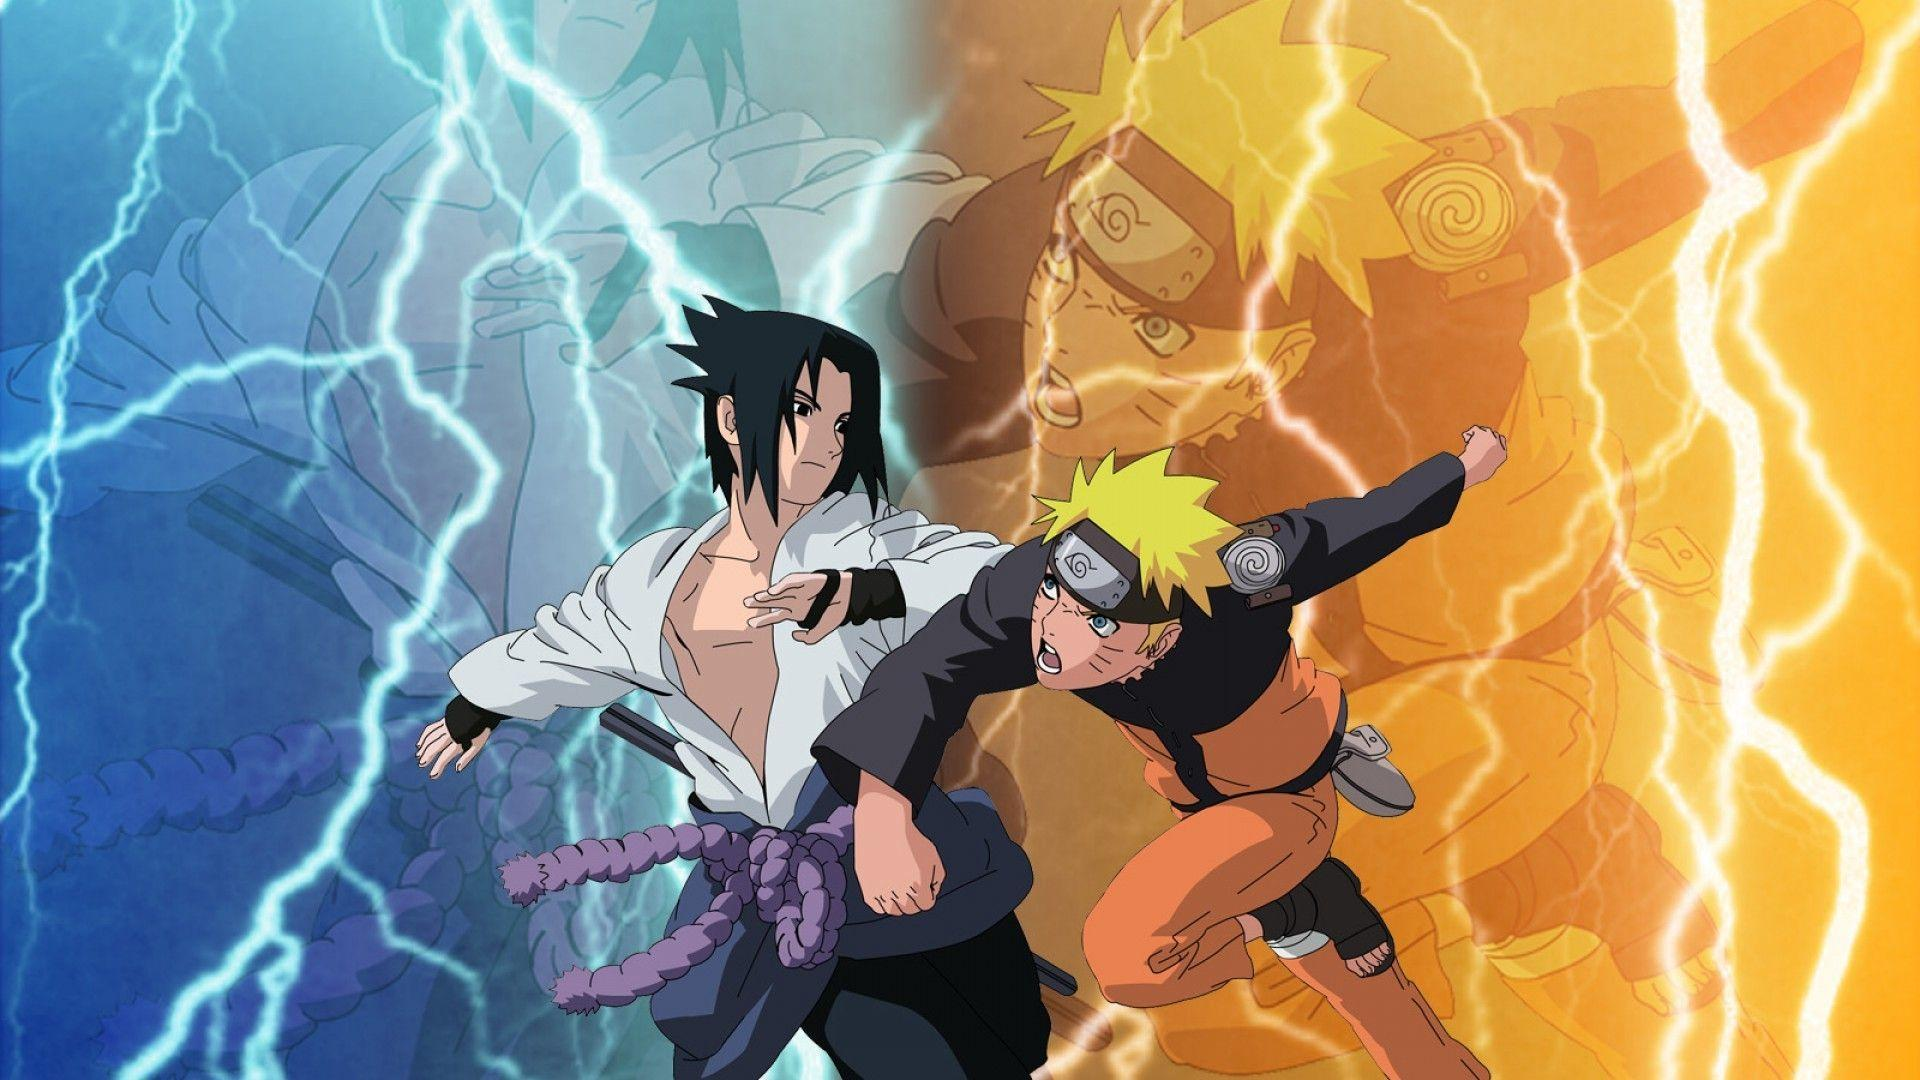 Bien connu Wallpapers De Naruto Shippuden HD 2017 - Wallpaper Cave JT34